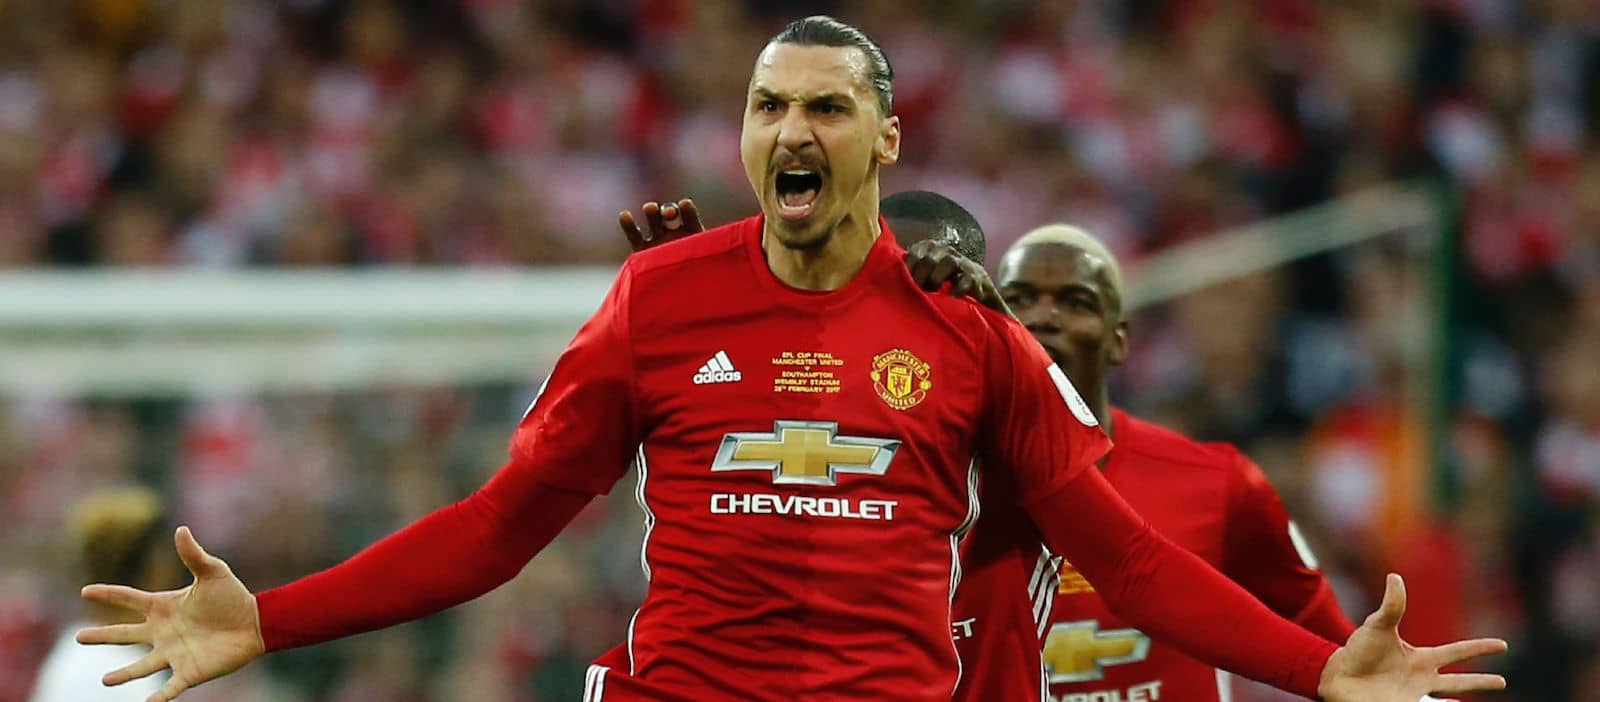 Jose Mourinho reacts to reports of Zlatan Ibrahimovic's new Manchester United deal